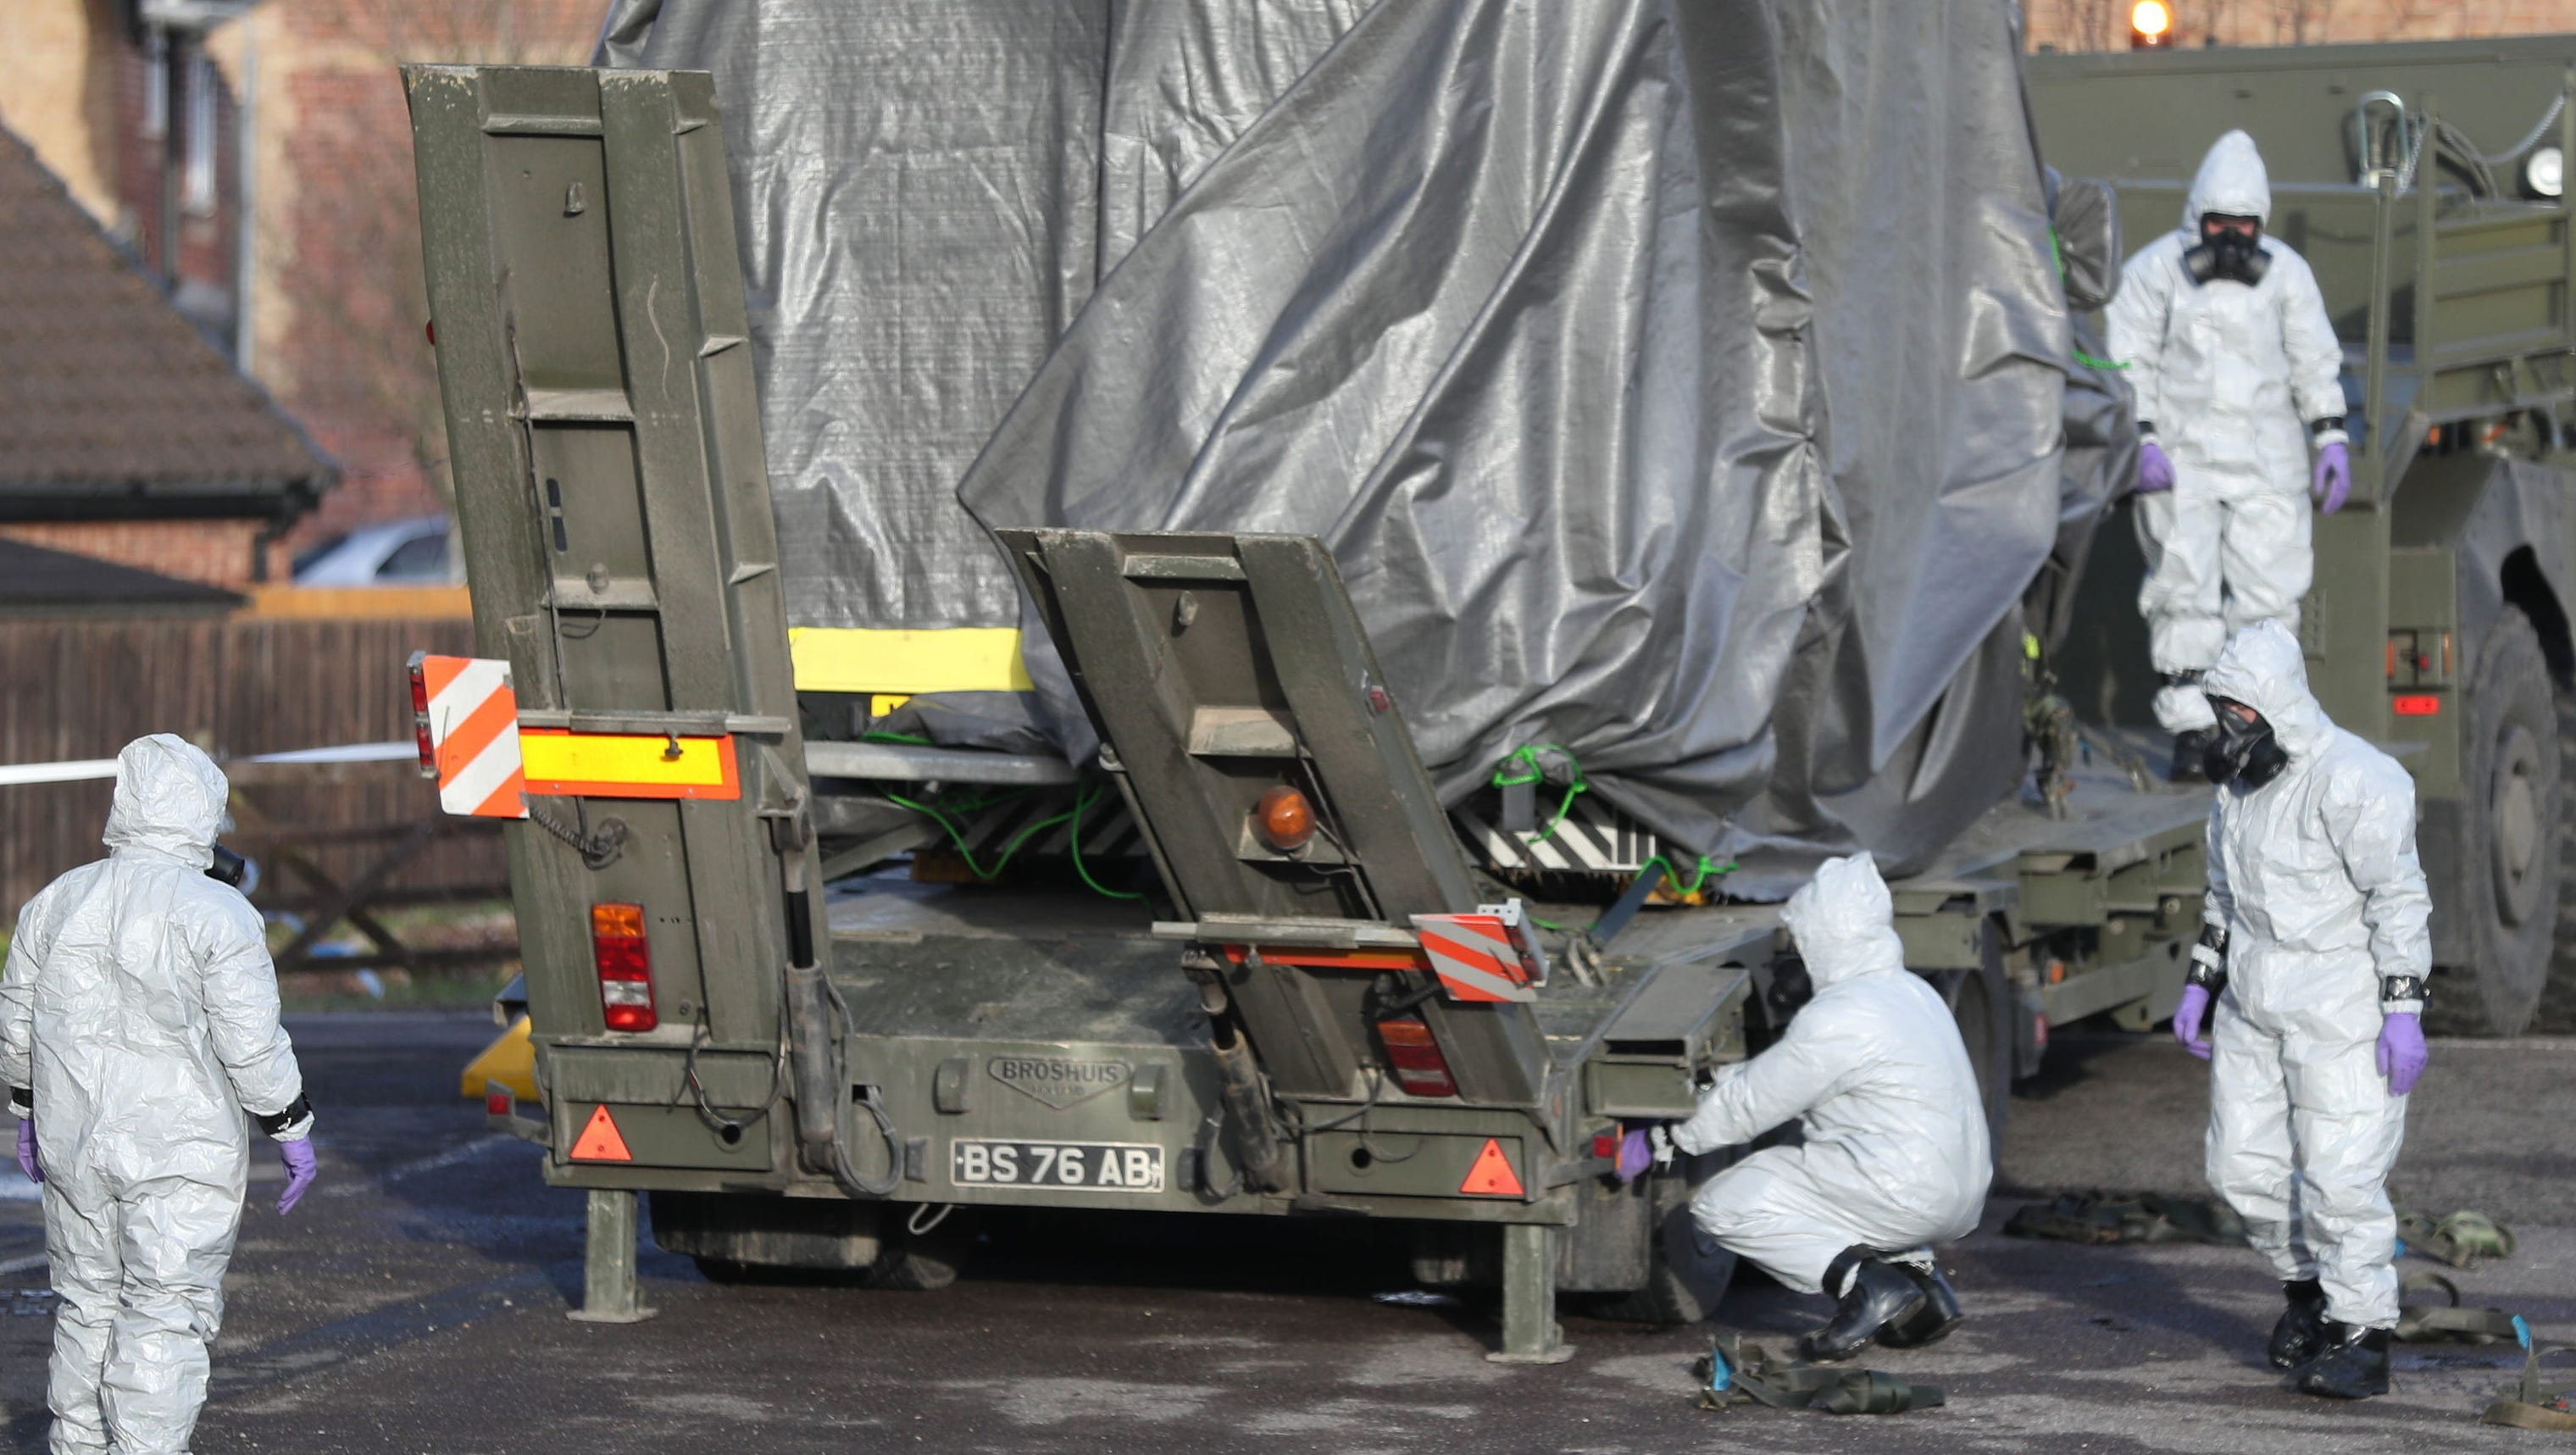 U.K.: Diners may have been exposed to nerve agent attack